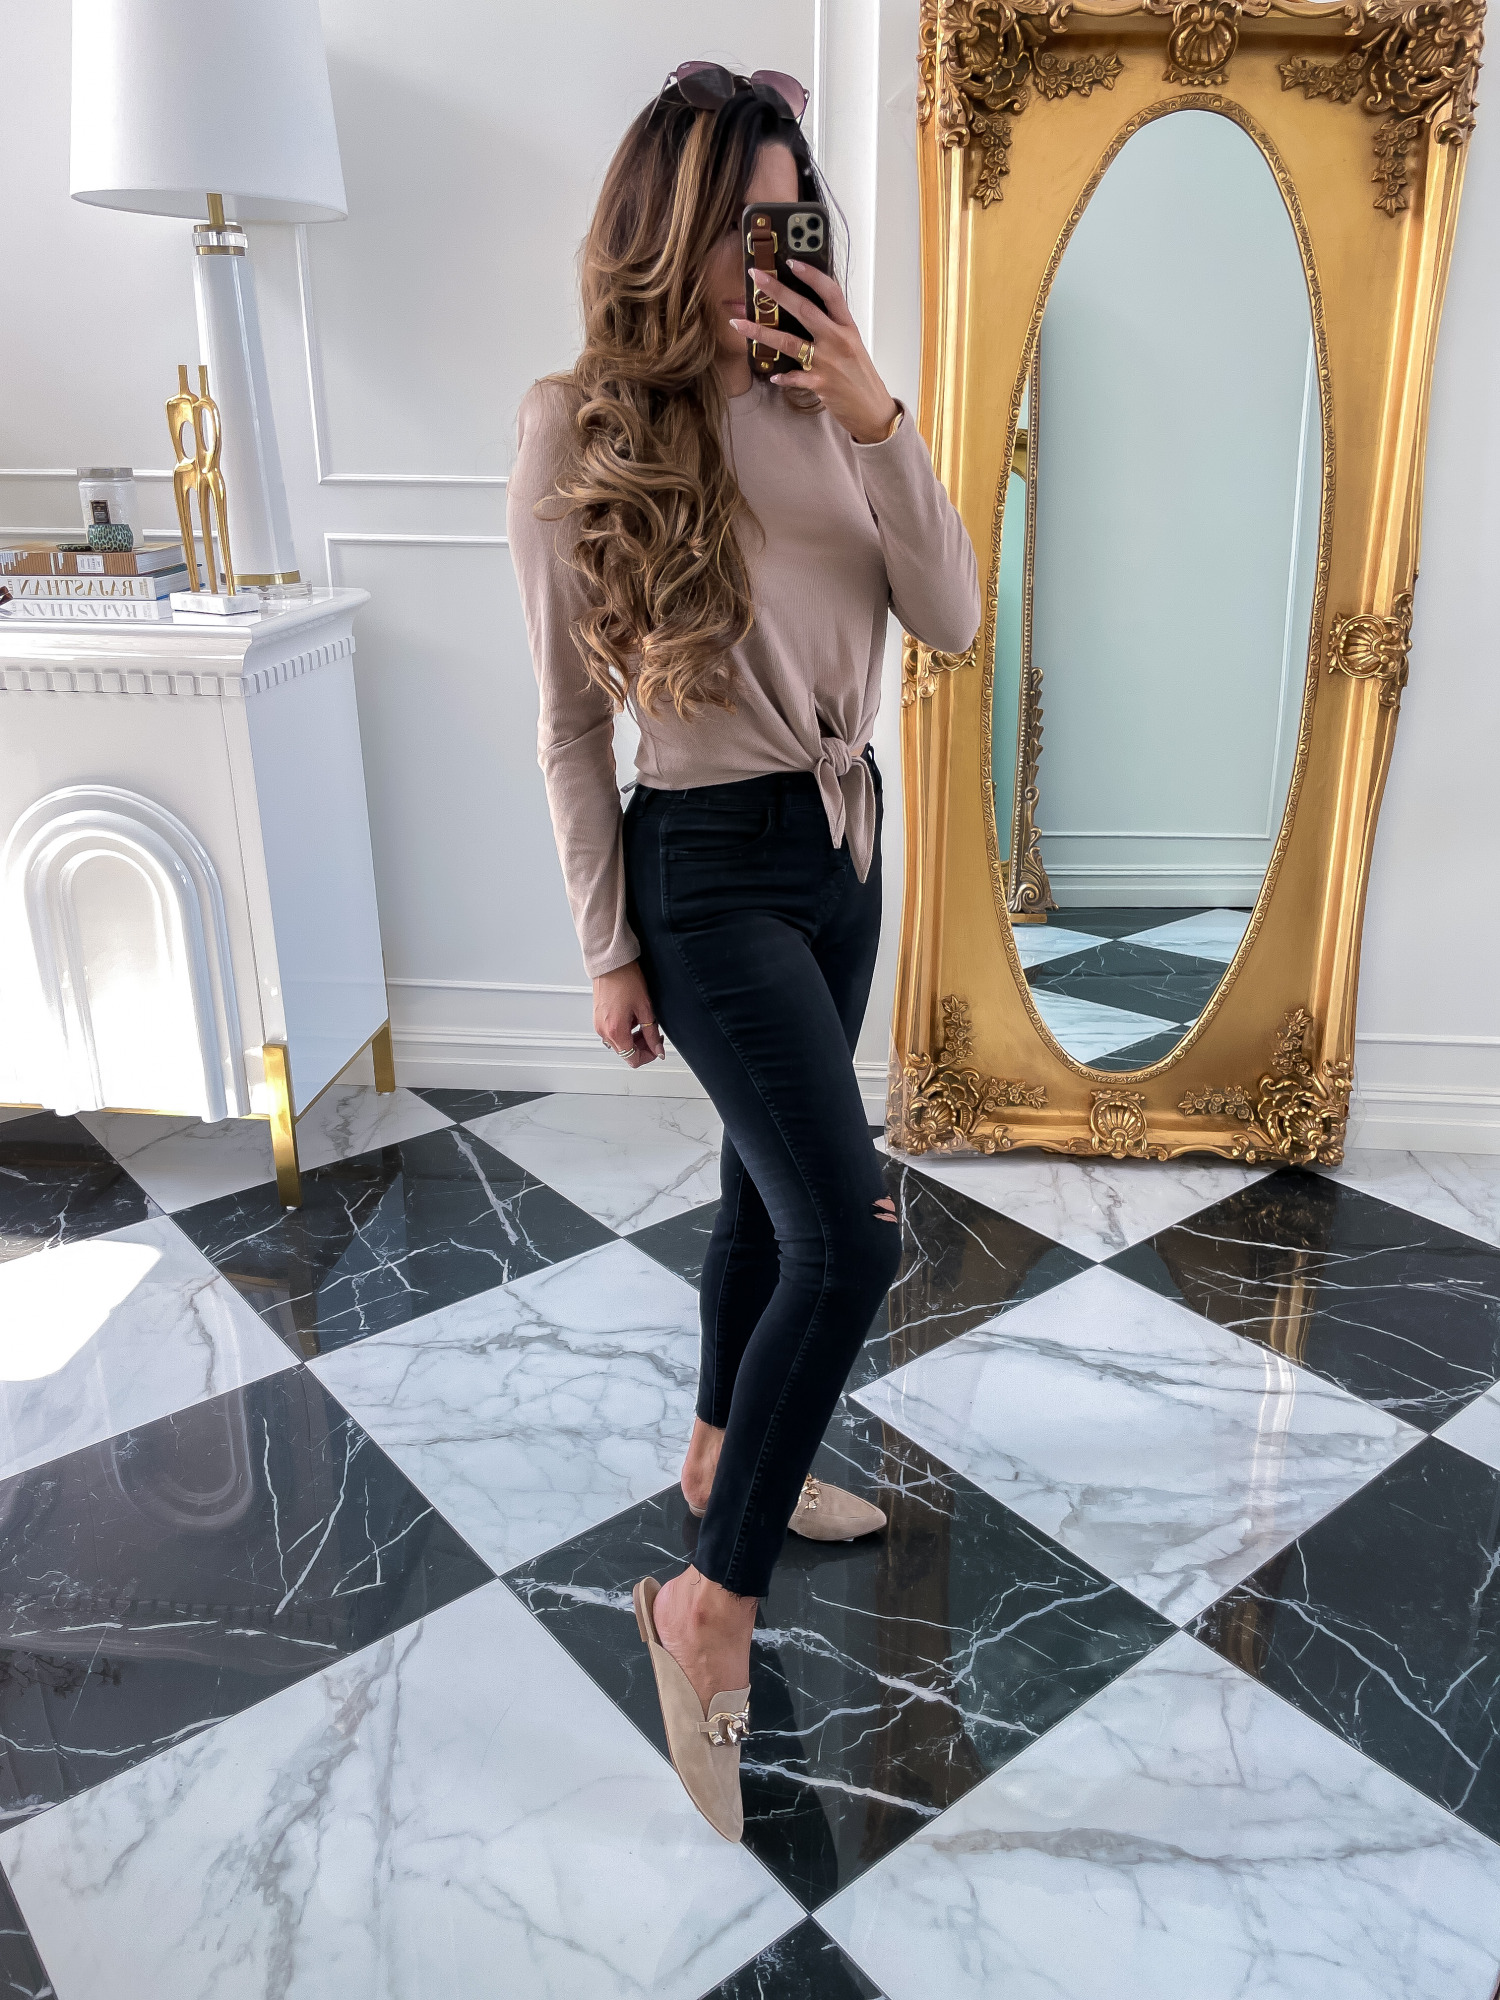 nordstrom sale 2021 must haves, Good american NSALE 2021, Emily gemma | Nordstrom Anniversary Sale by popular US fashion blog, The Sweetest Thing: image of Emily Gemma wearing a brown long sleeve tie front shirt, black leggings, and Steve Madden gold chain tan brown suede mules.